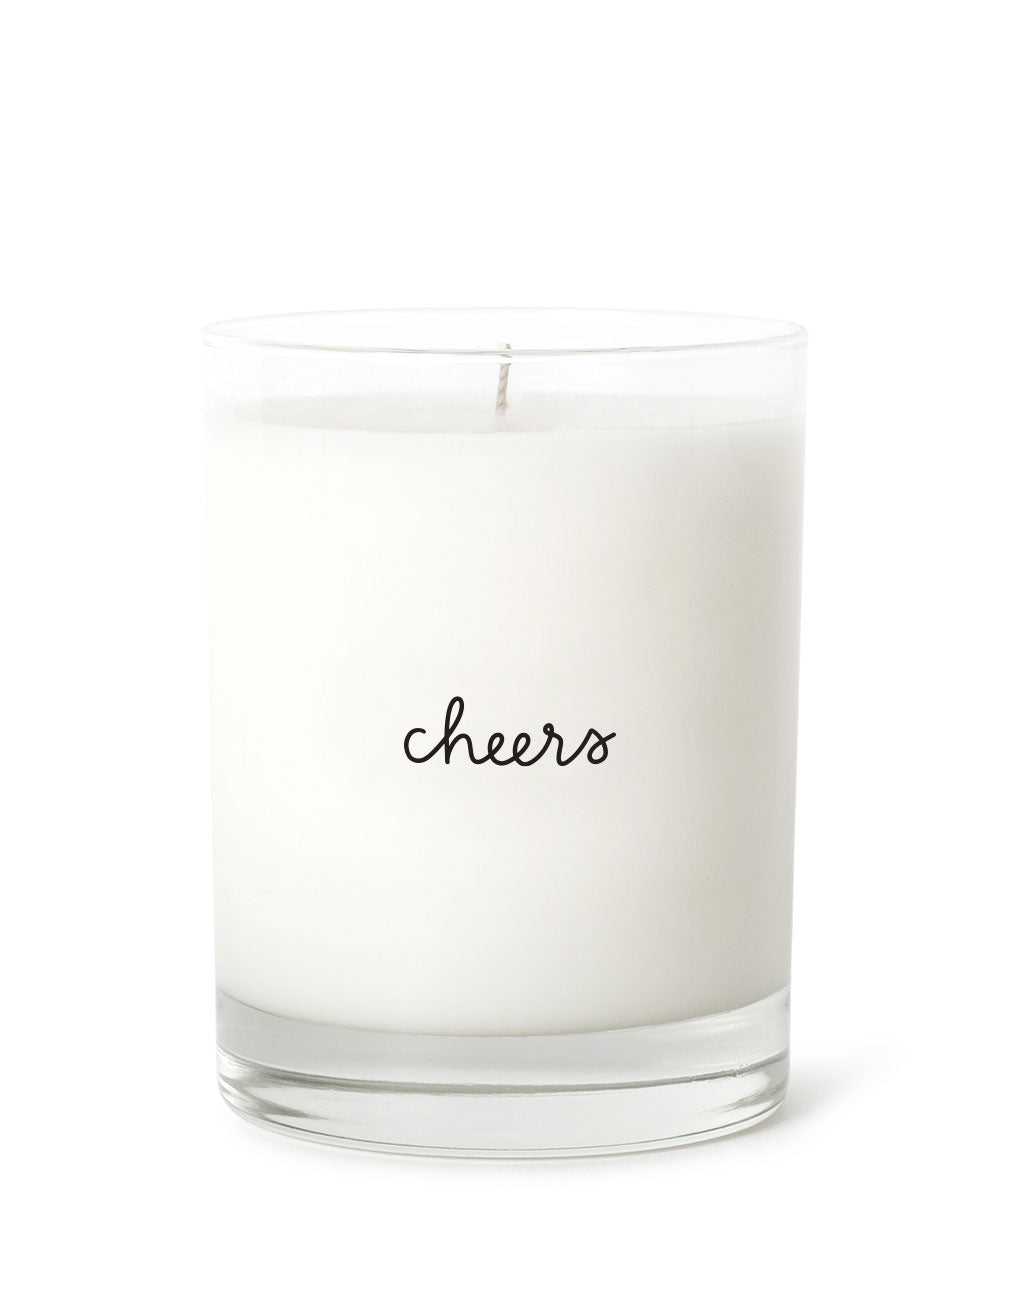 Cheers Candle | The Little Market